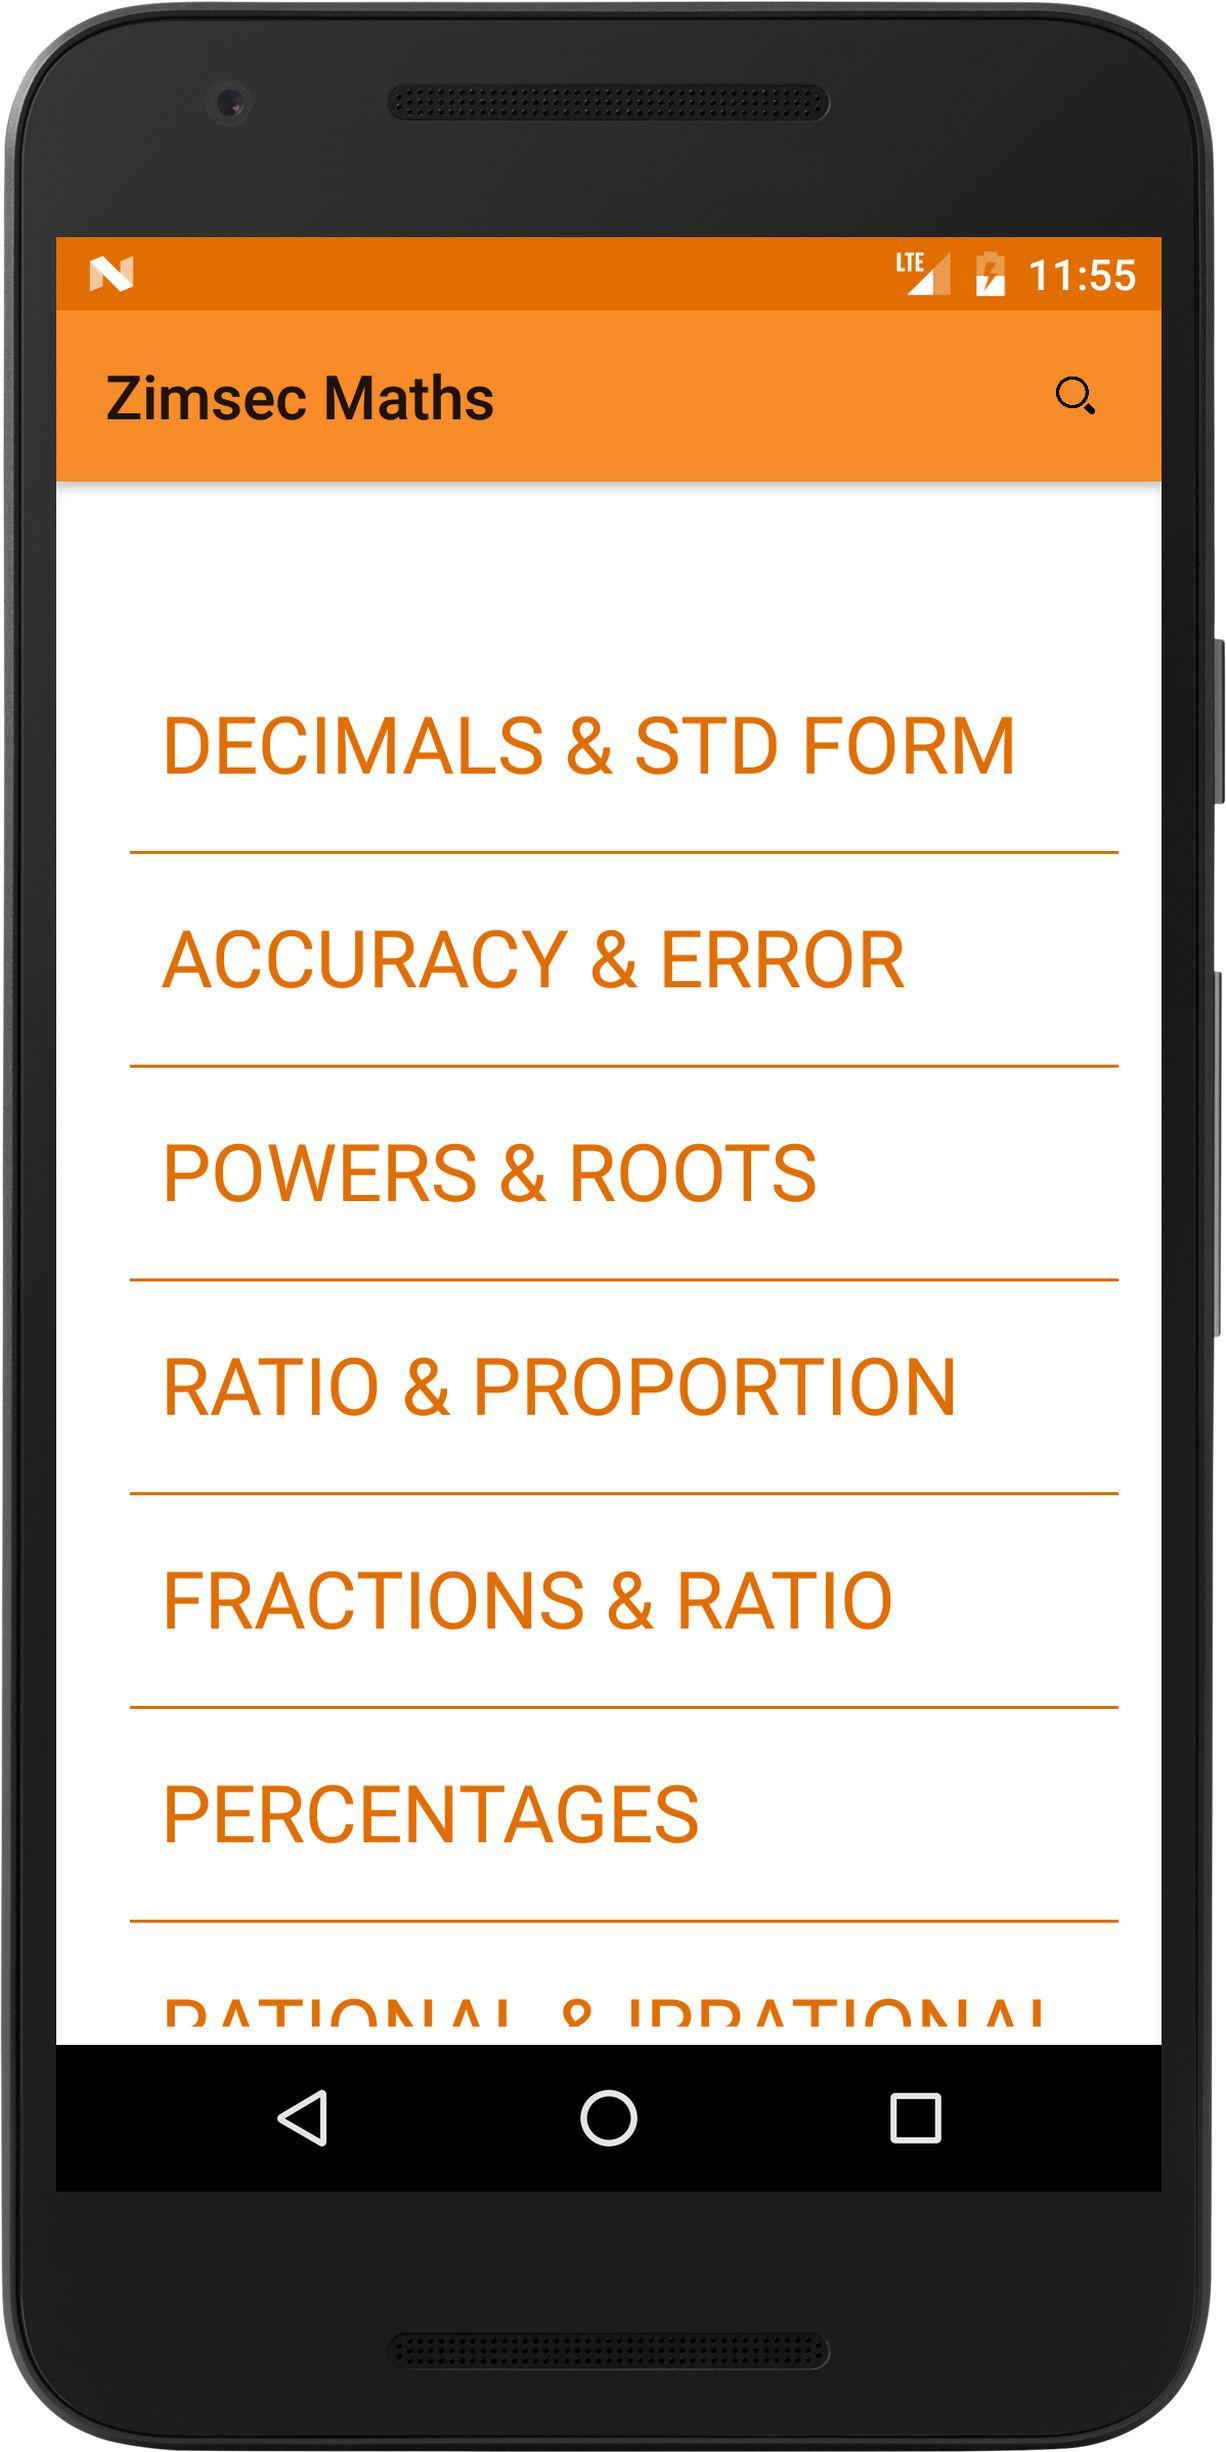 Zimsec Maths for Android - APK Download